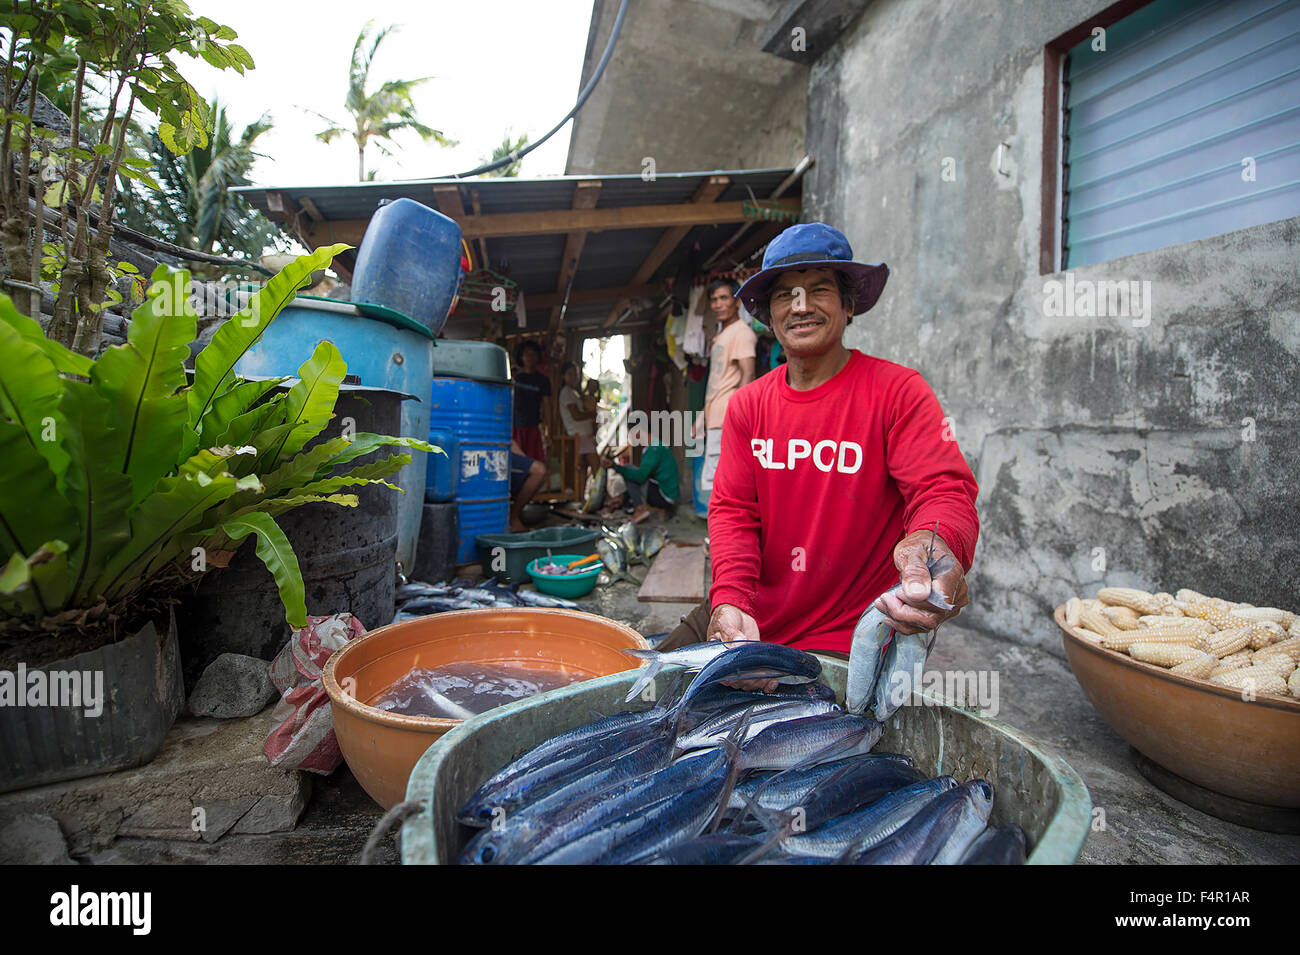 Fish Monger Stock Photos & Fish Monger Stock Images - Alamy